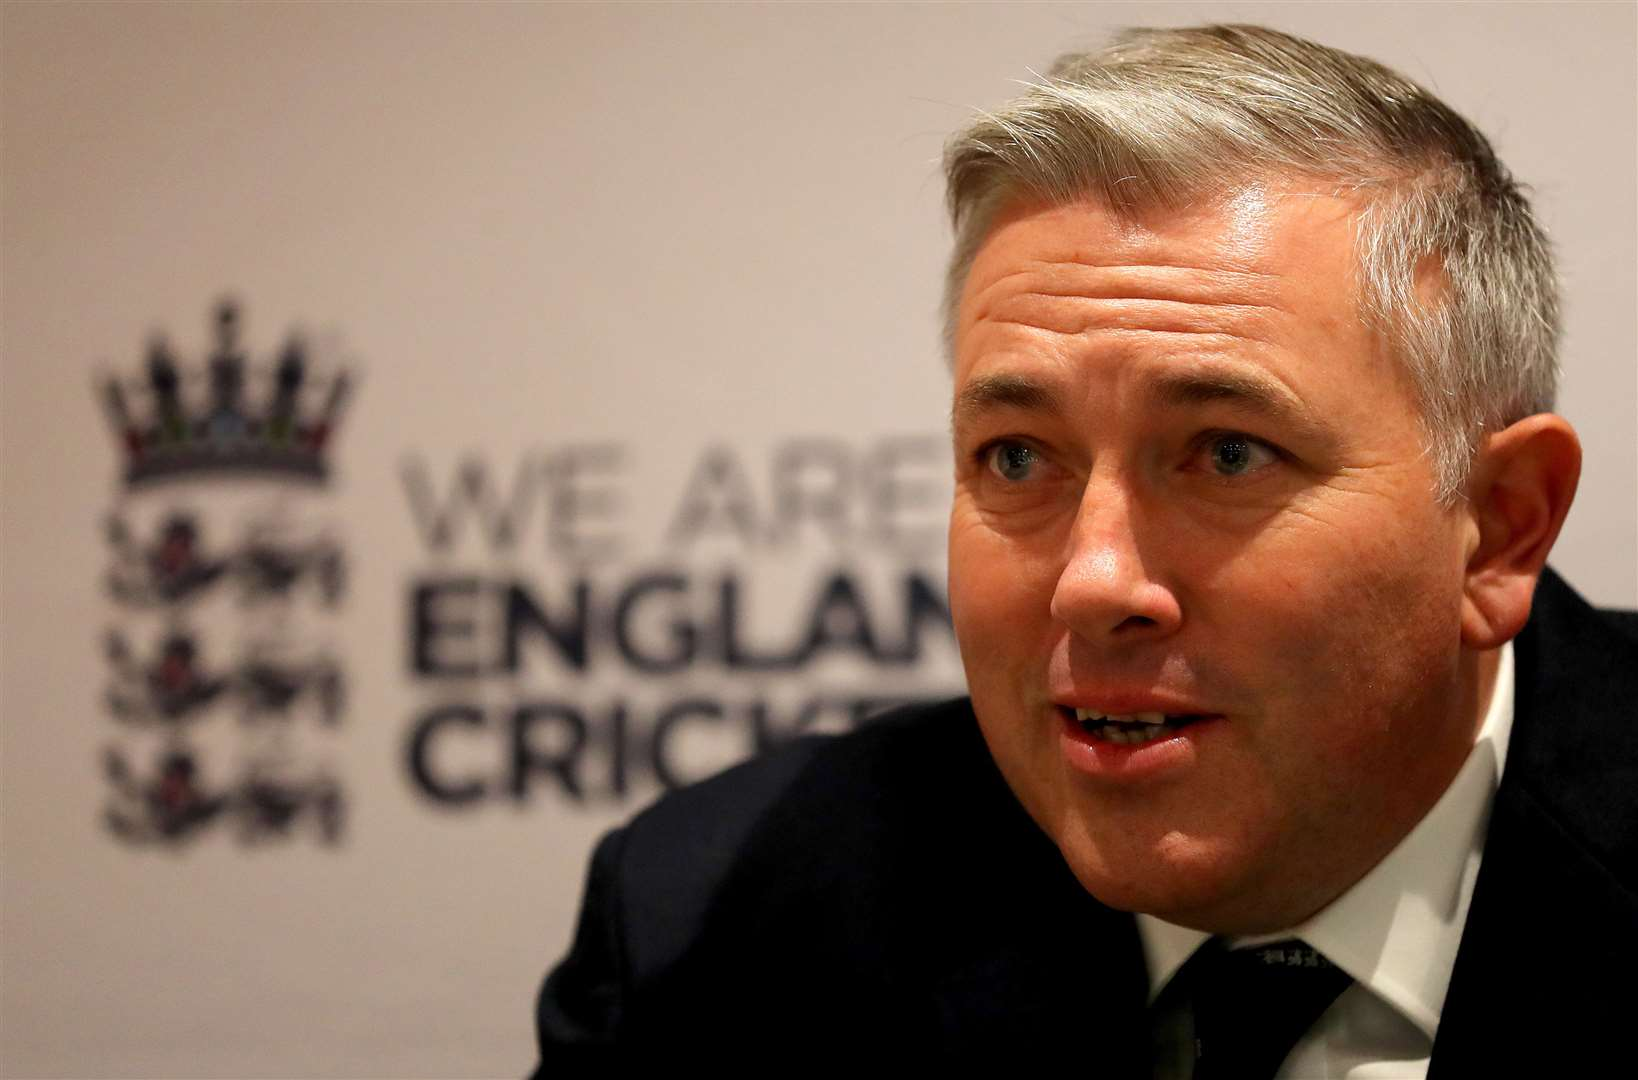 LONDON, ENGLAND - OCTOBER 10: England Head Coach Chris Silverwood speaks to the media during the England Head Coach Chris Silverwood Press Conference at Lord's Cricket Ground on October 10, 2019 in London, England. (Photo by James Chance/Getty Images). (26173013)